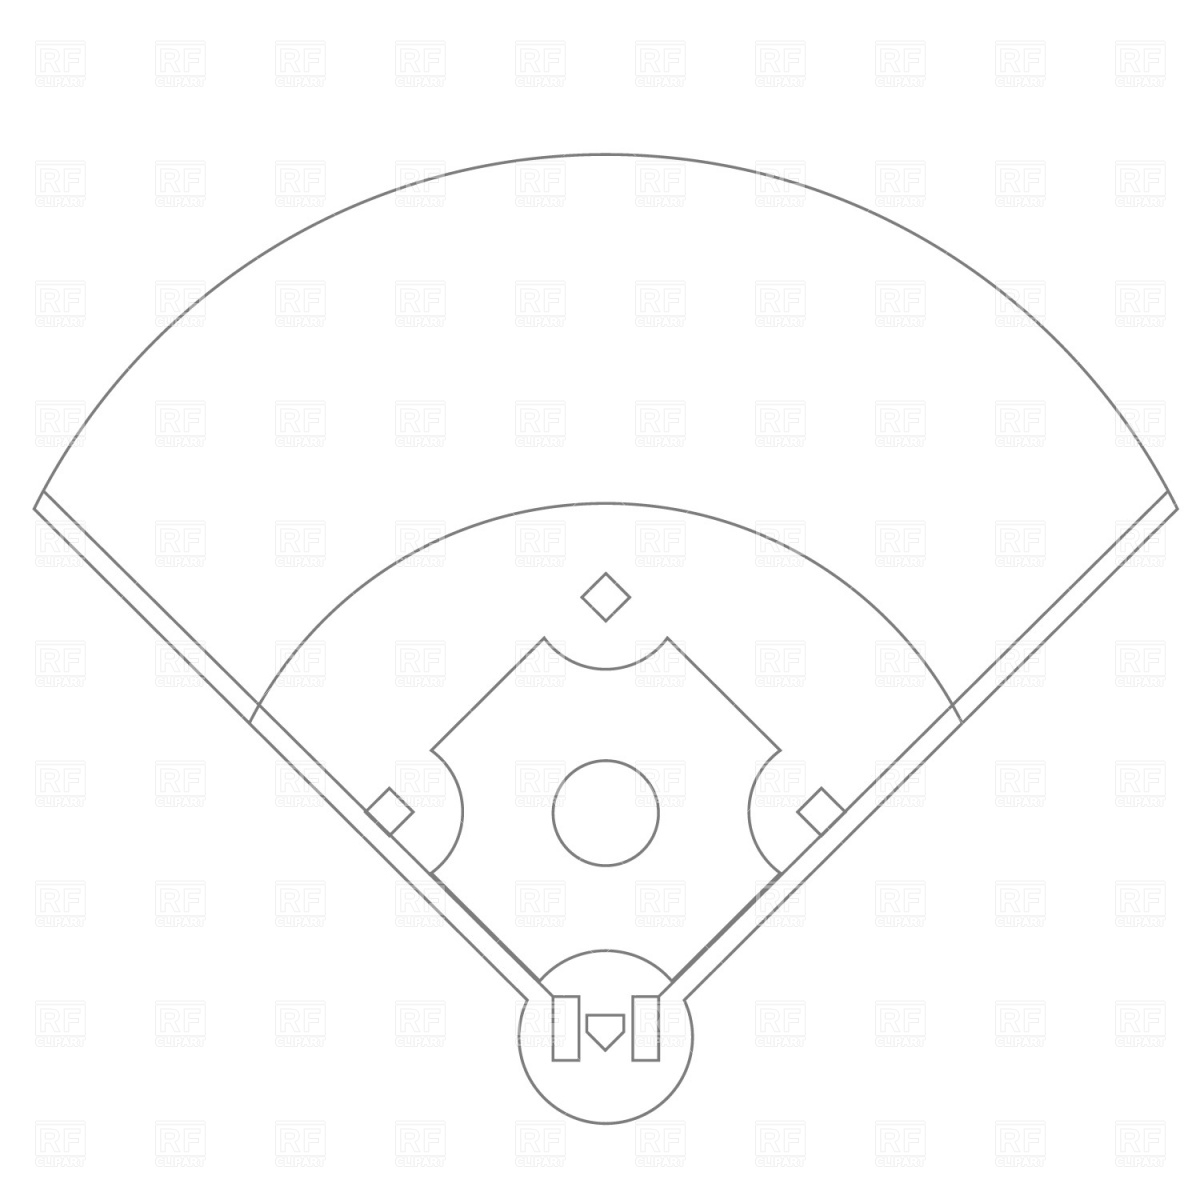 Baseball Field Diagram Baseball Field Diagram Printable Wiring Diagram Web